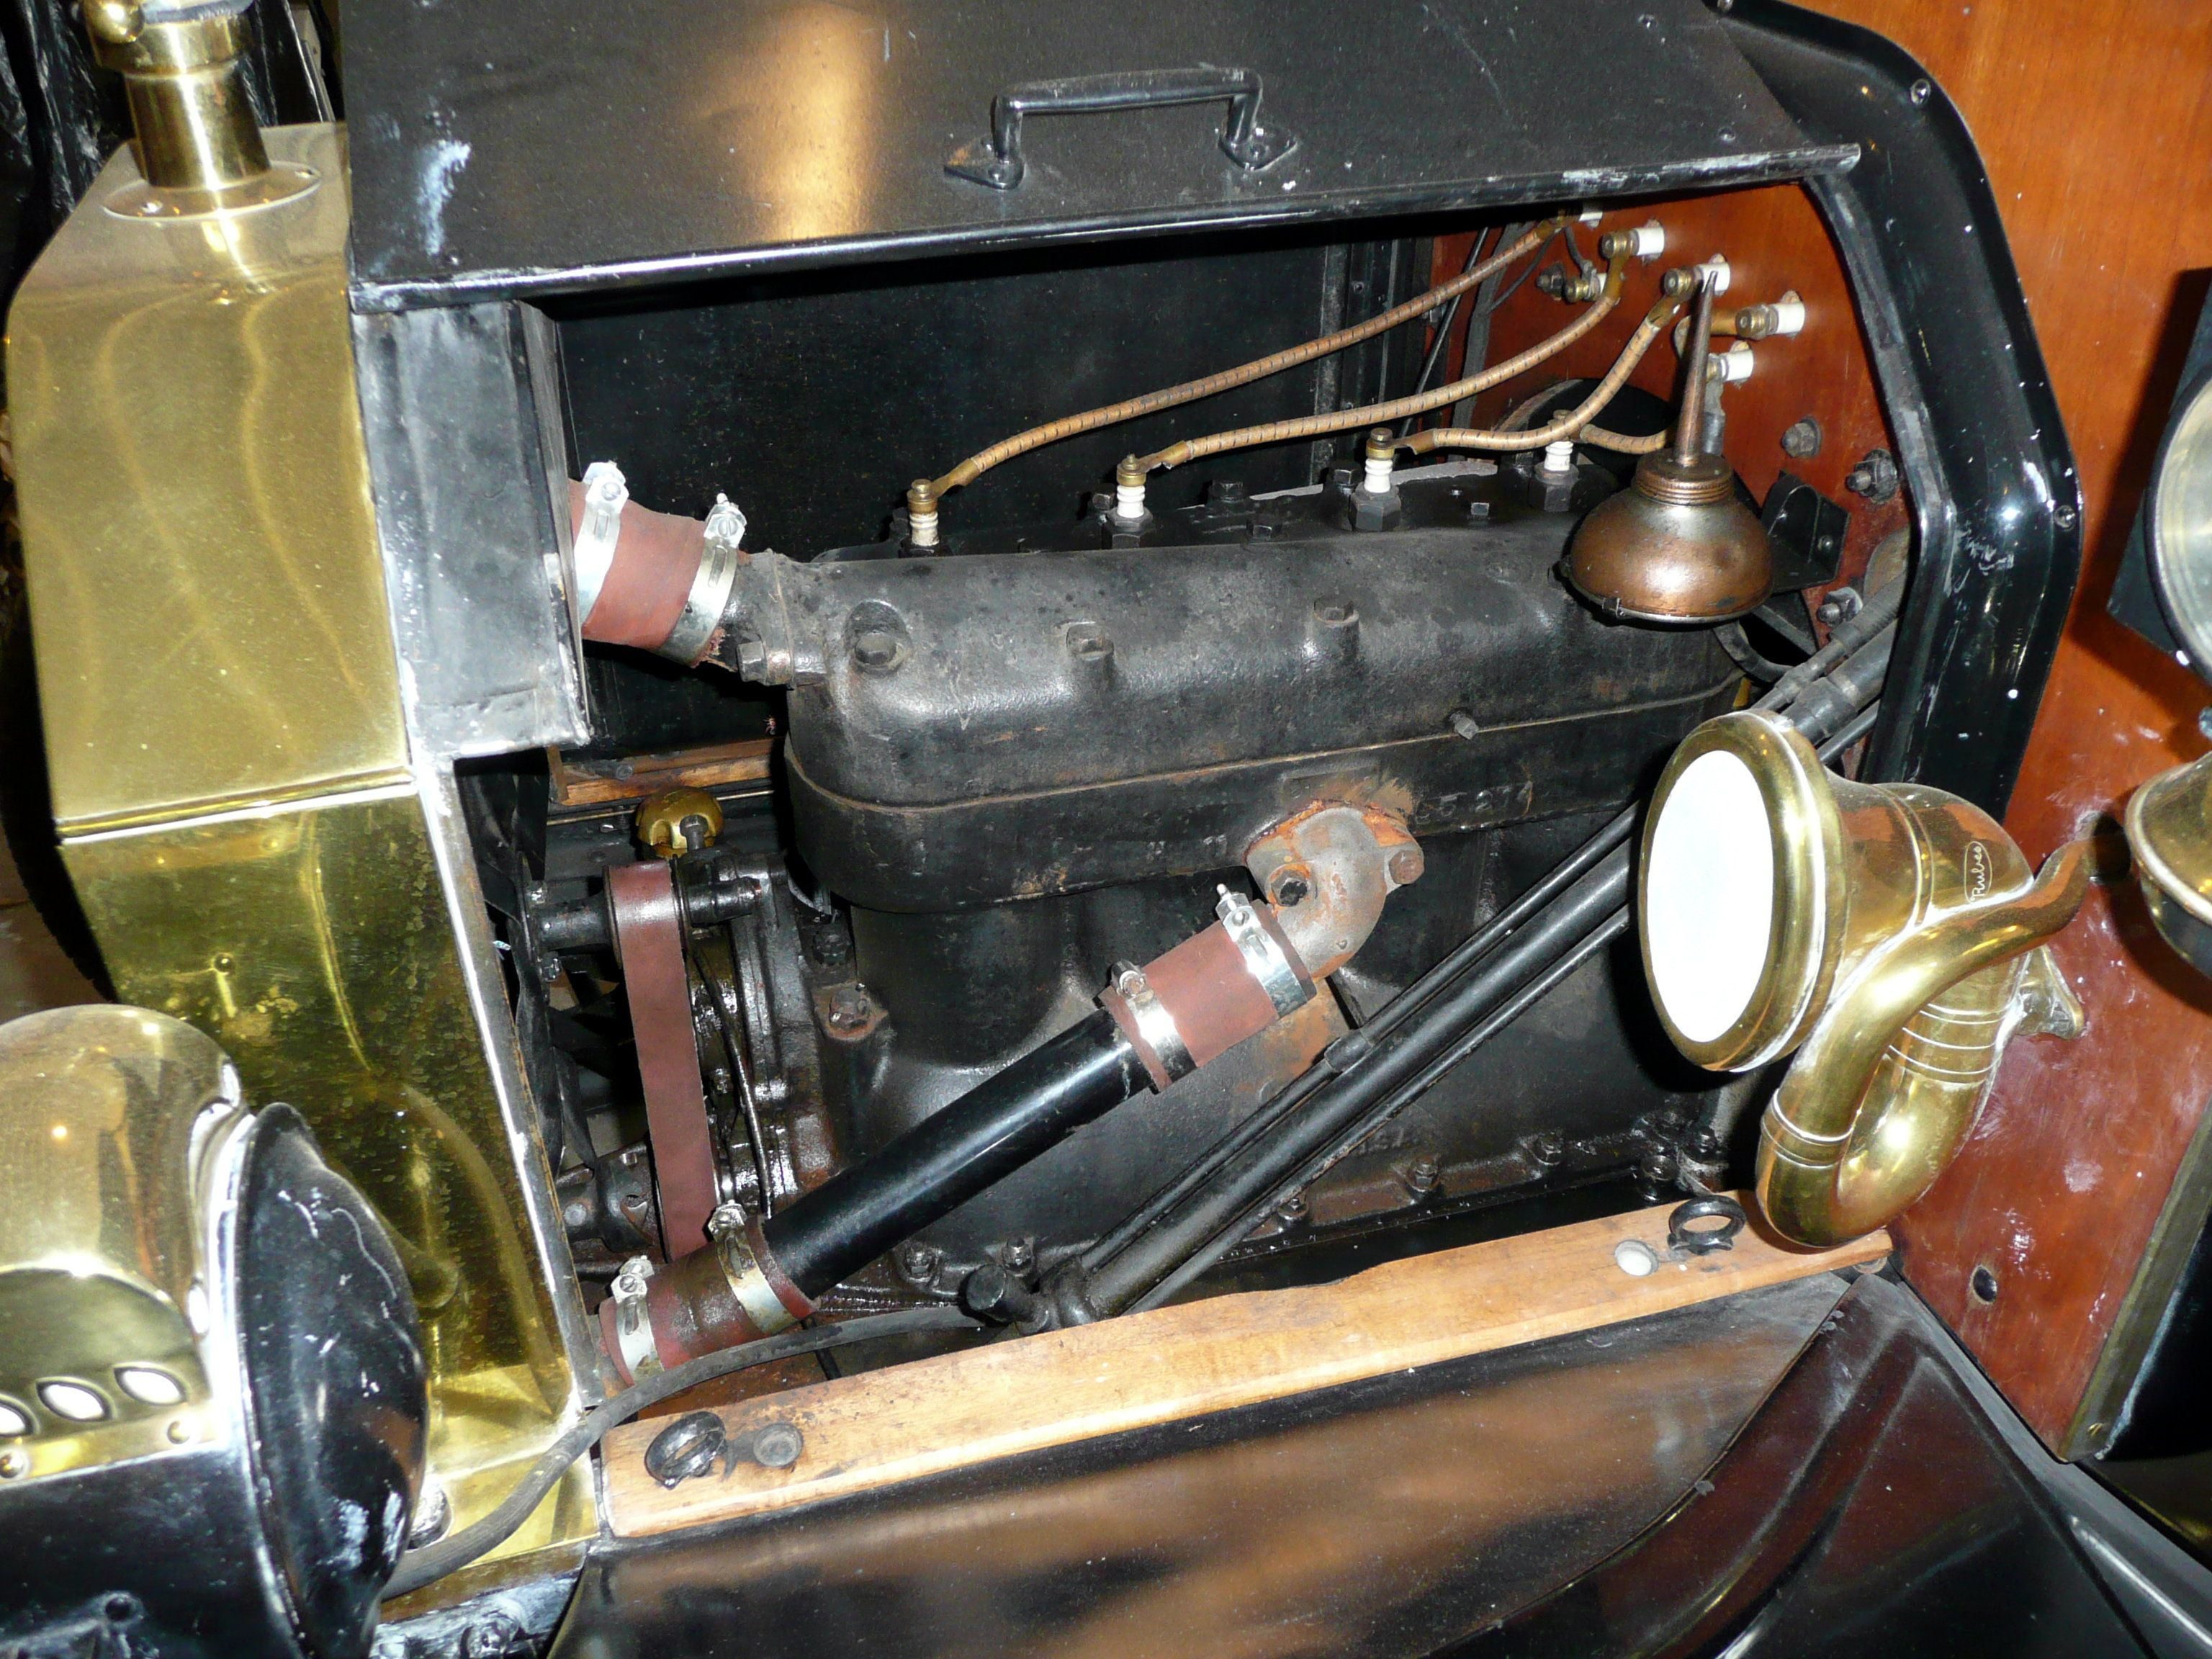 Ford Model T Engine In 2020 Model T Ford Models Engineering